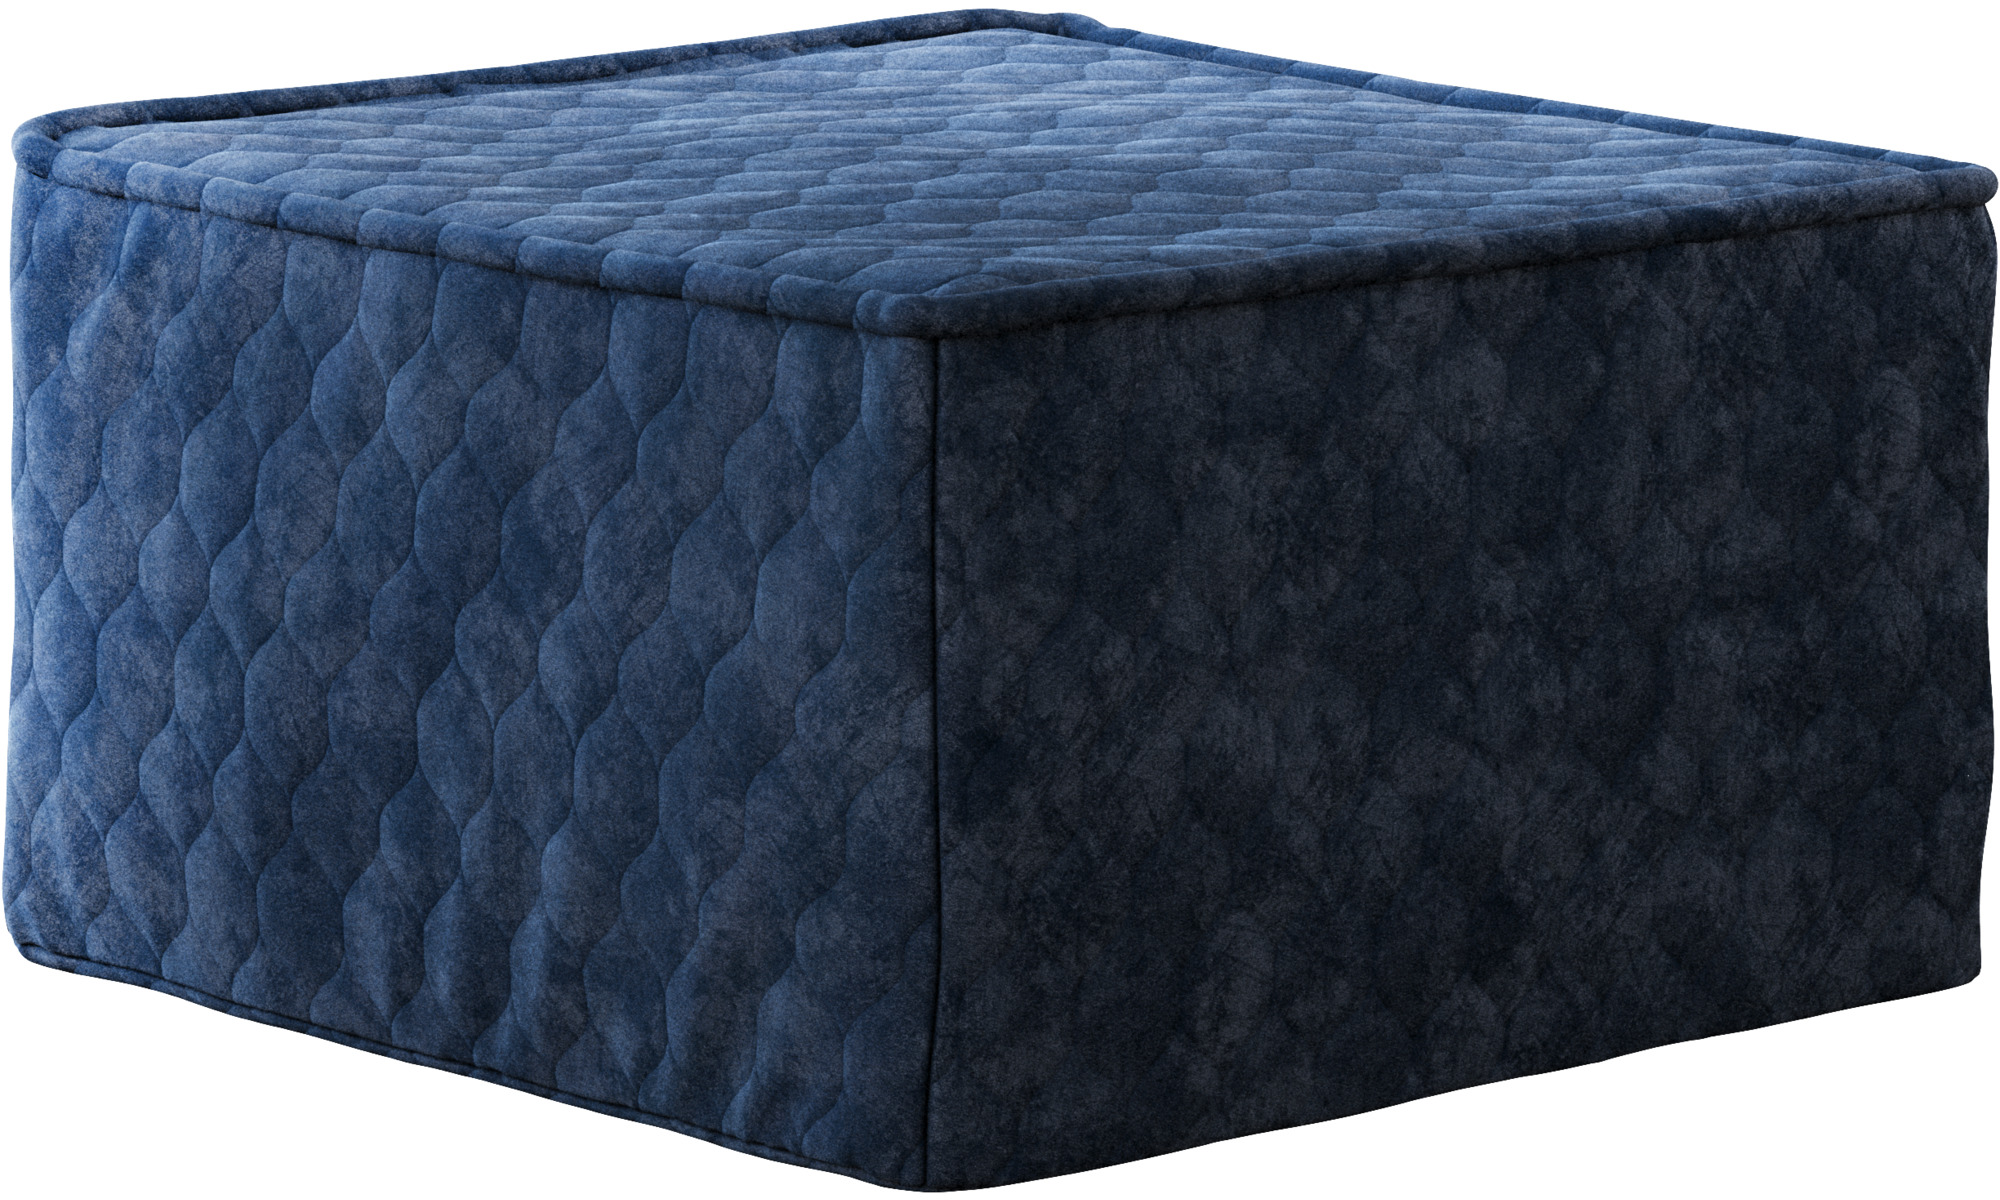 Sofa Beds   Xtra Footstool With Sleeping Function   Blue   Fabric ...